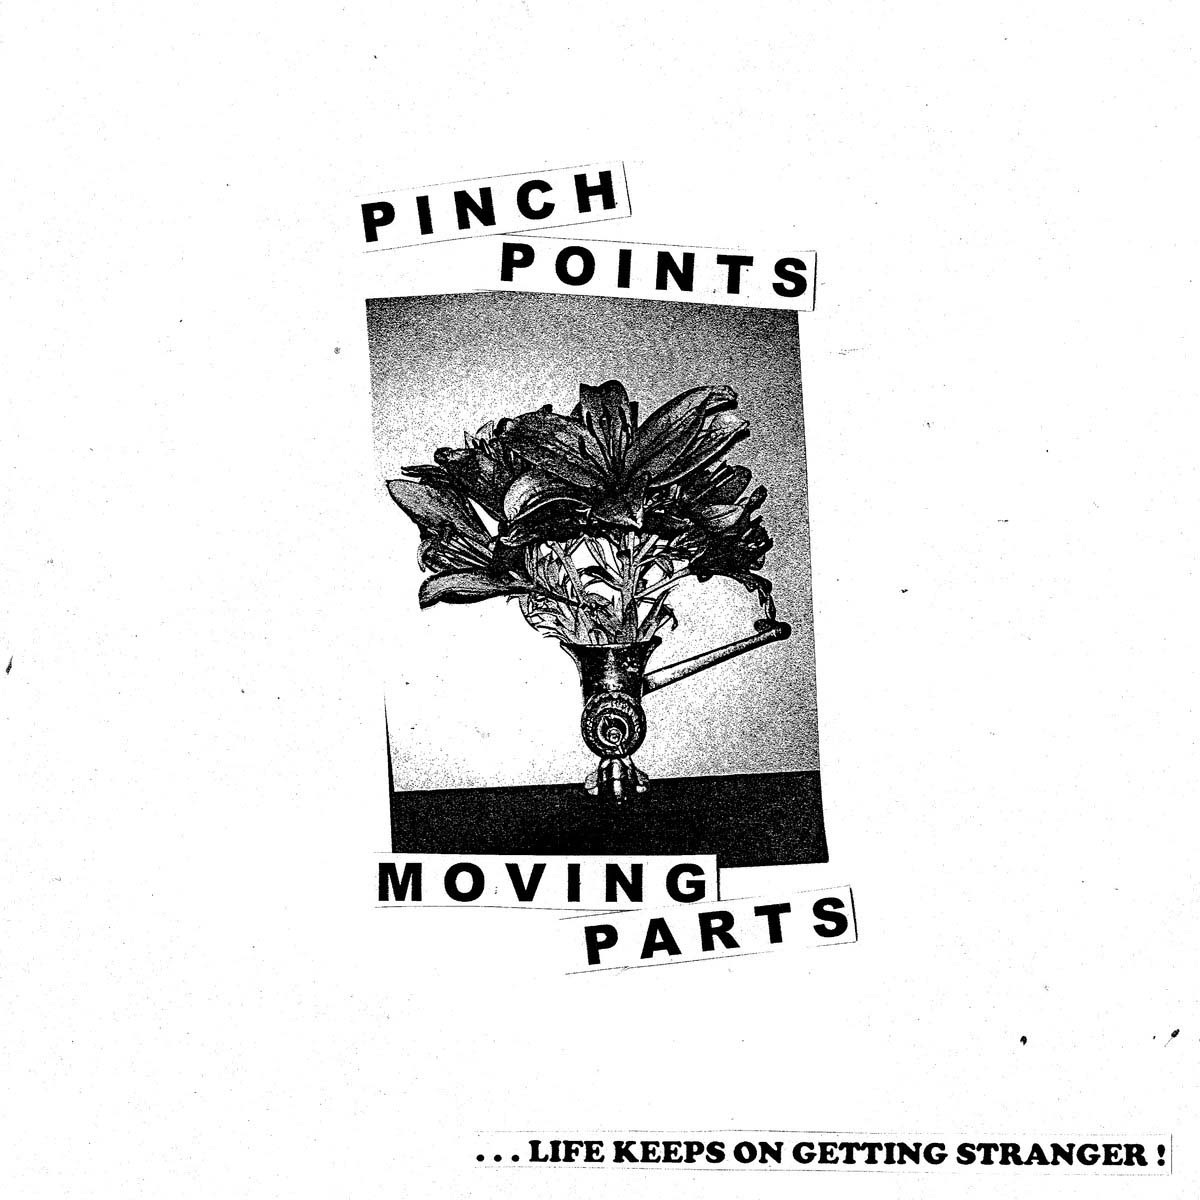 Pinch Points' LP cover, sourced from    Bandcamp